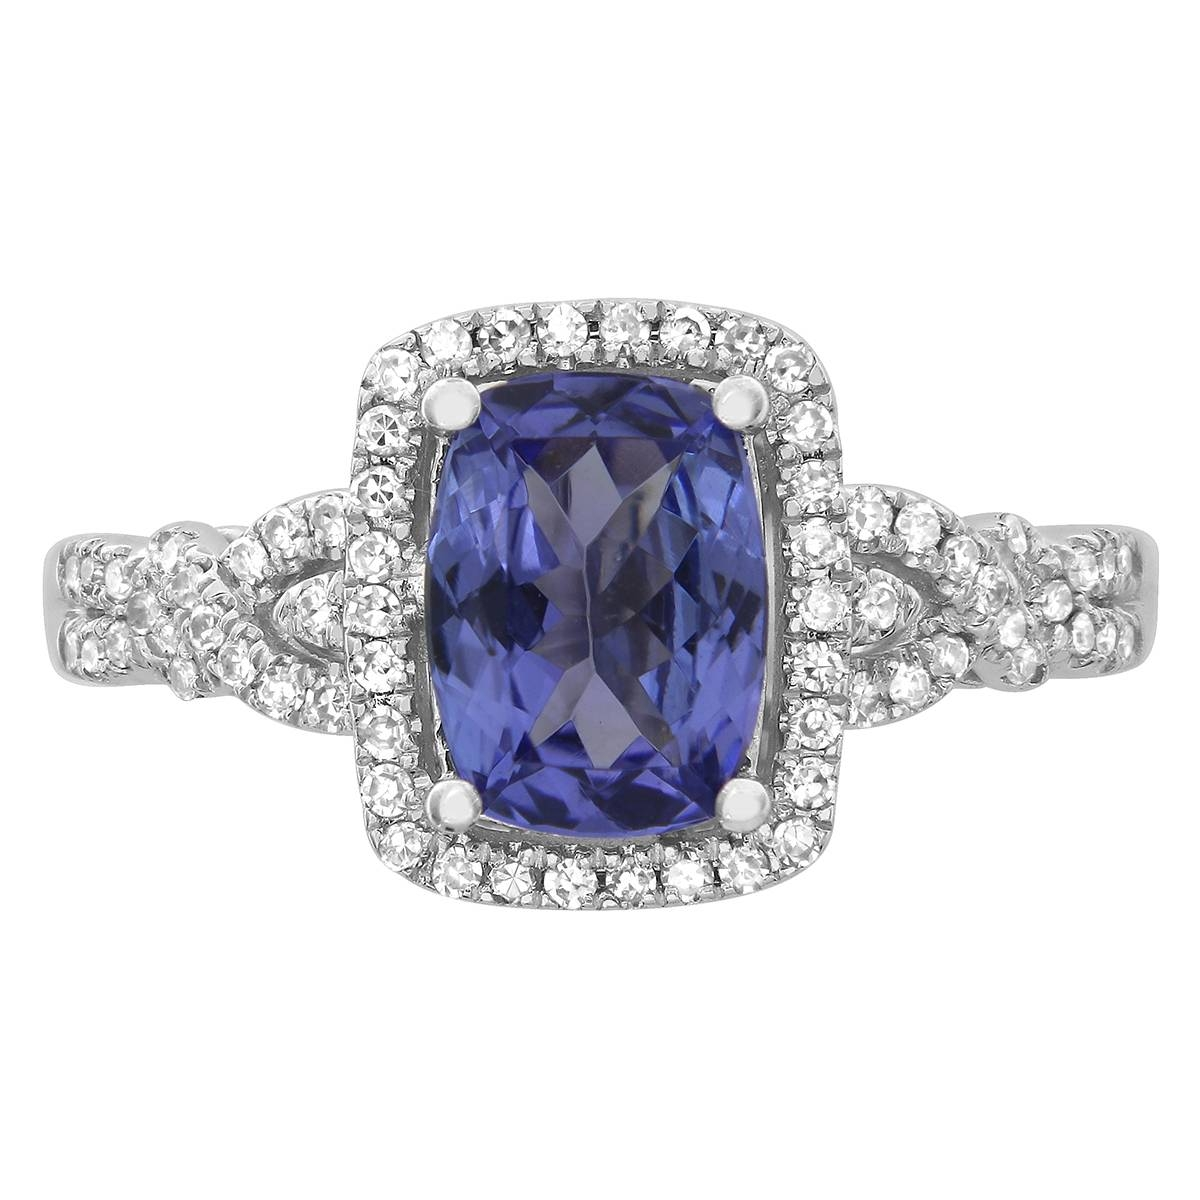 10k White Gold Cushion Cut Tanzanite And Diamond Engagement Ring With Tanzanite Engagement Rings With White Gold (View 5 of 15)